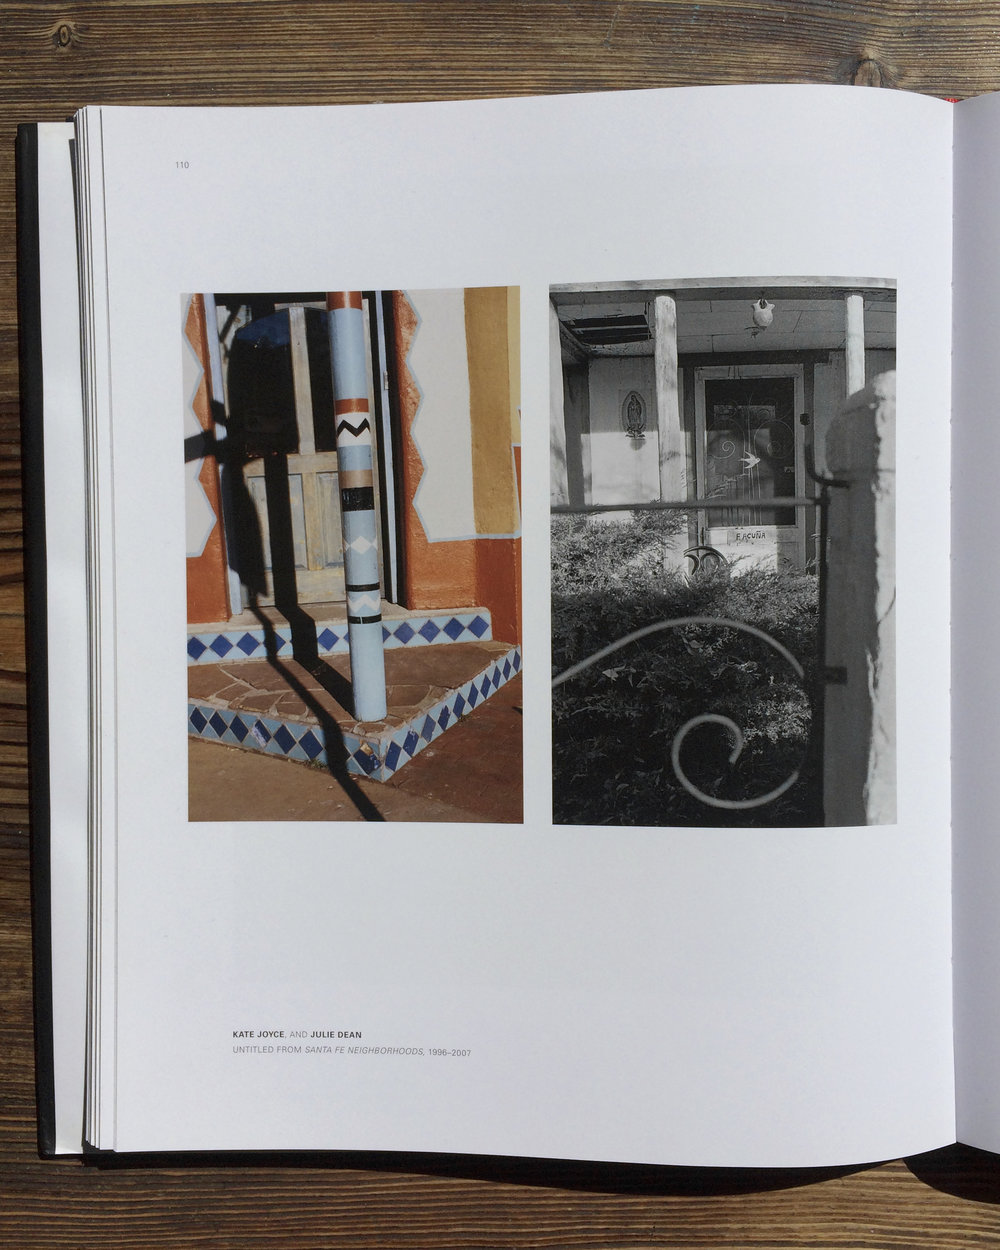 Through the Lens: Creating Santa Fe   , edited by Mary-Anne Redding and Krista Elrick, Museum of New Mexico Press, 2008. My aunt Julie Dean taught me photography when I was a teenager, we would take photo walks around Santa Fe. Diptych, Julie Dean (color) Kate Joyce (B&W) 1996